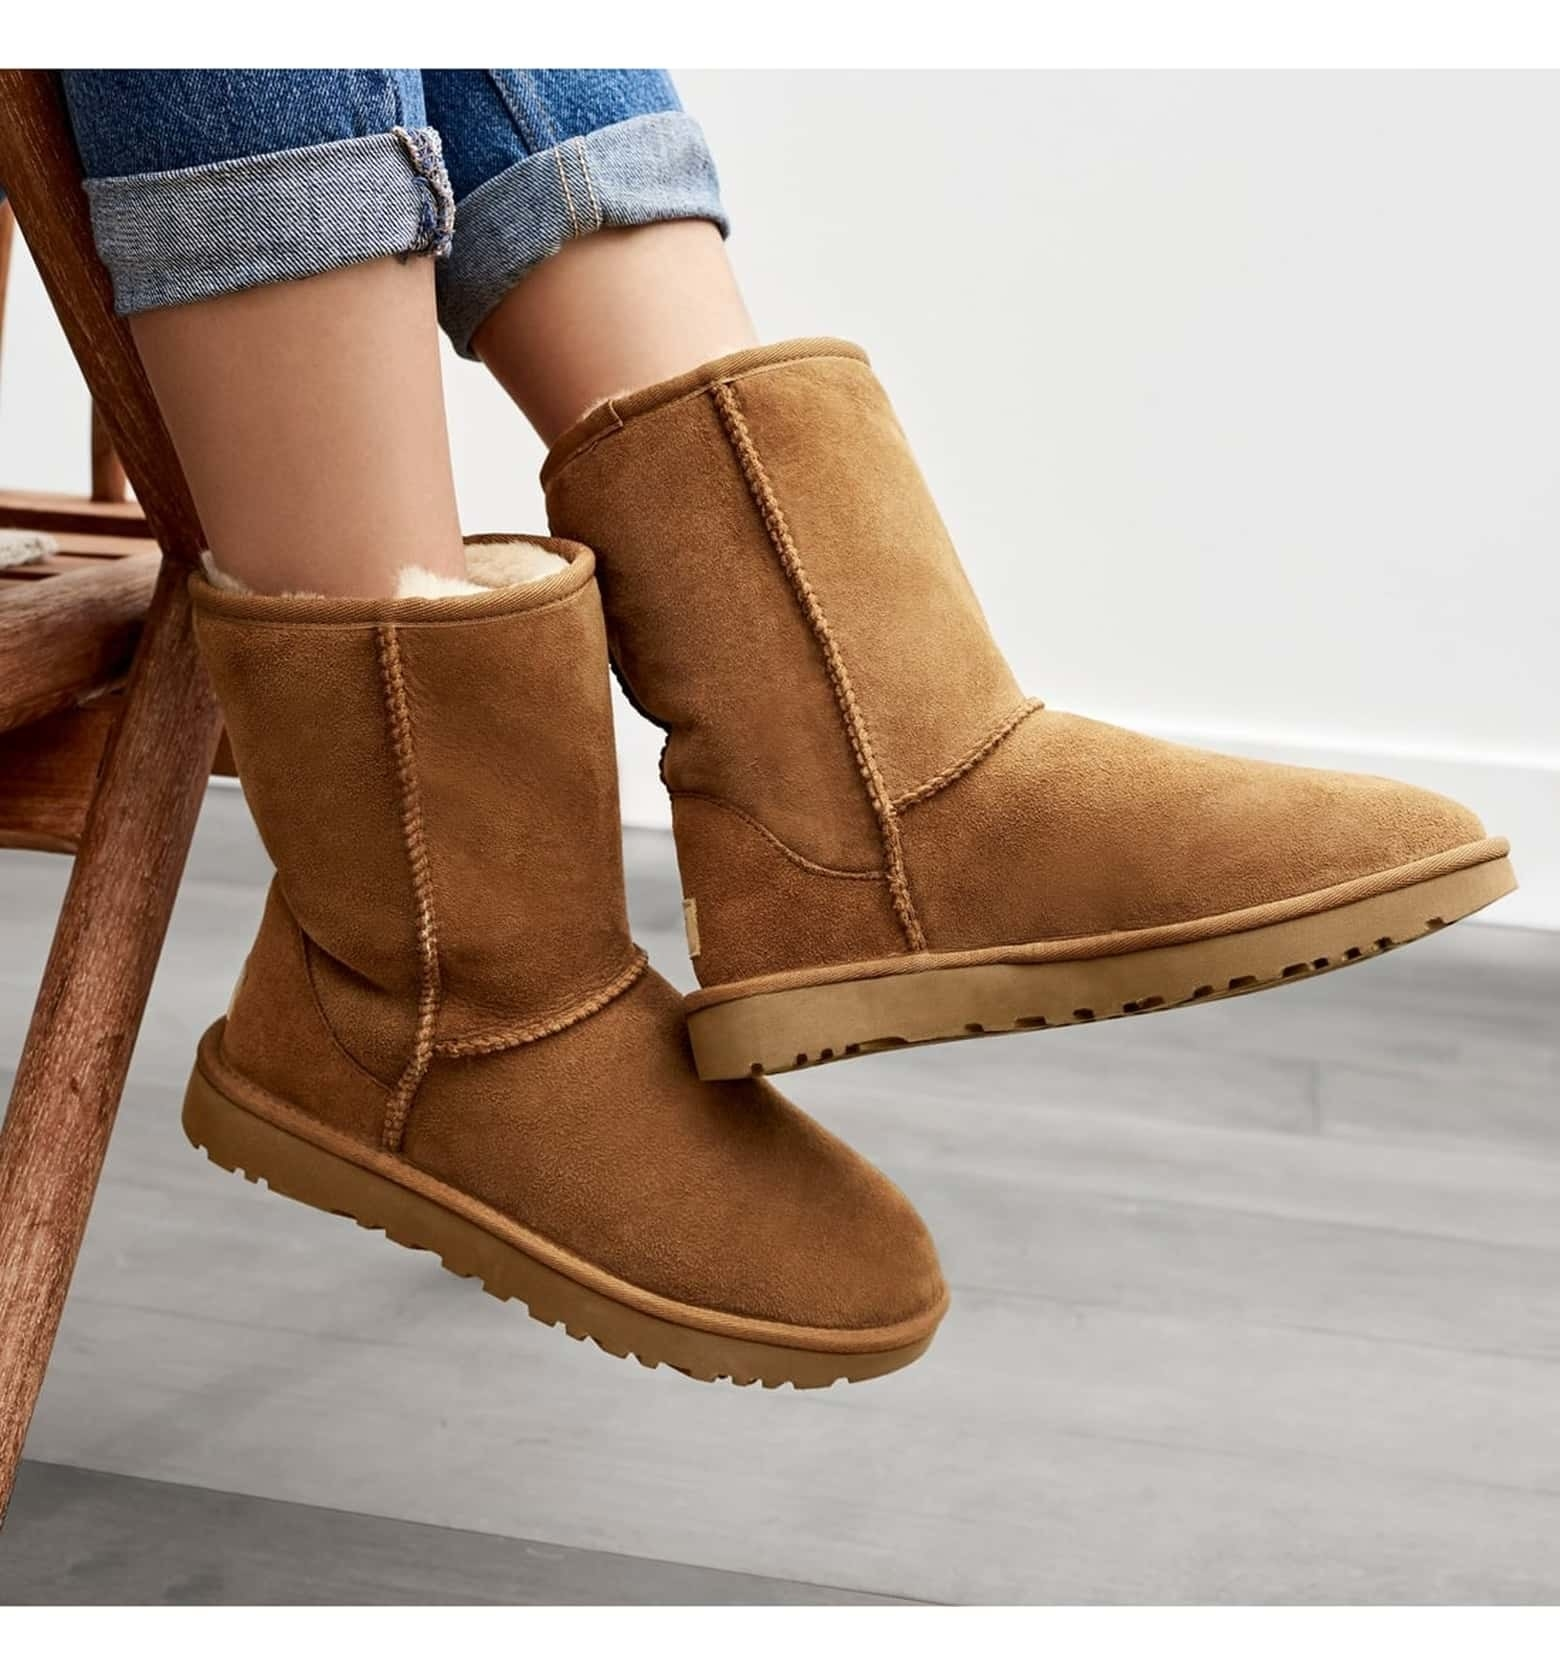 The suede boots in brown that come up to mid calf-height